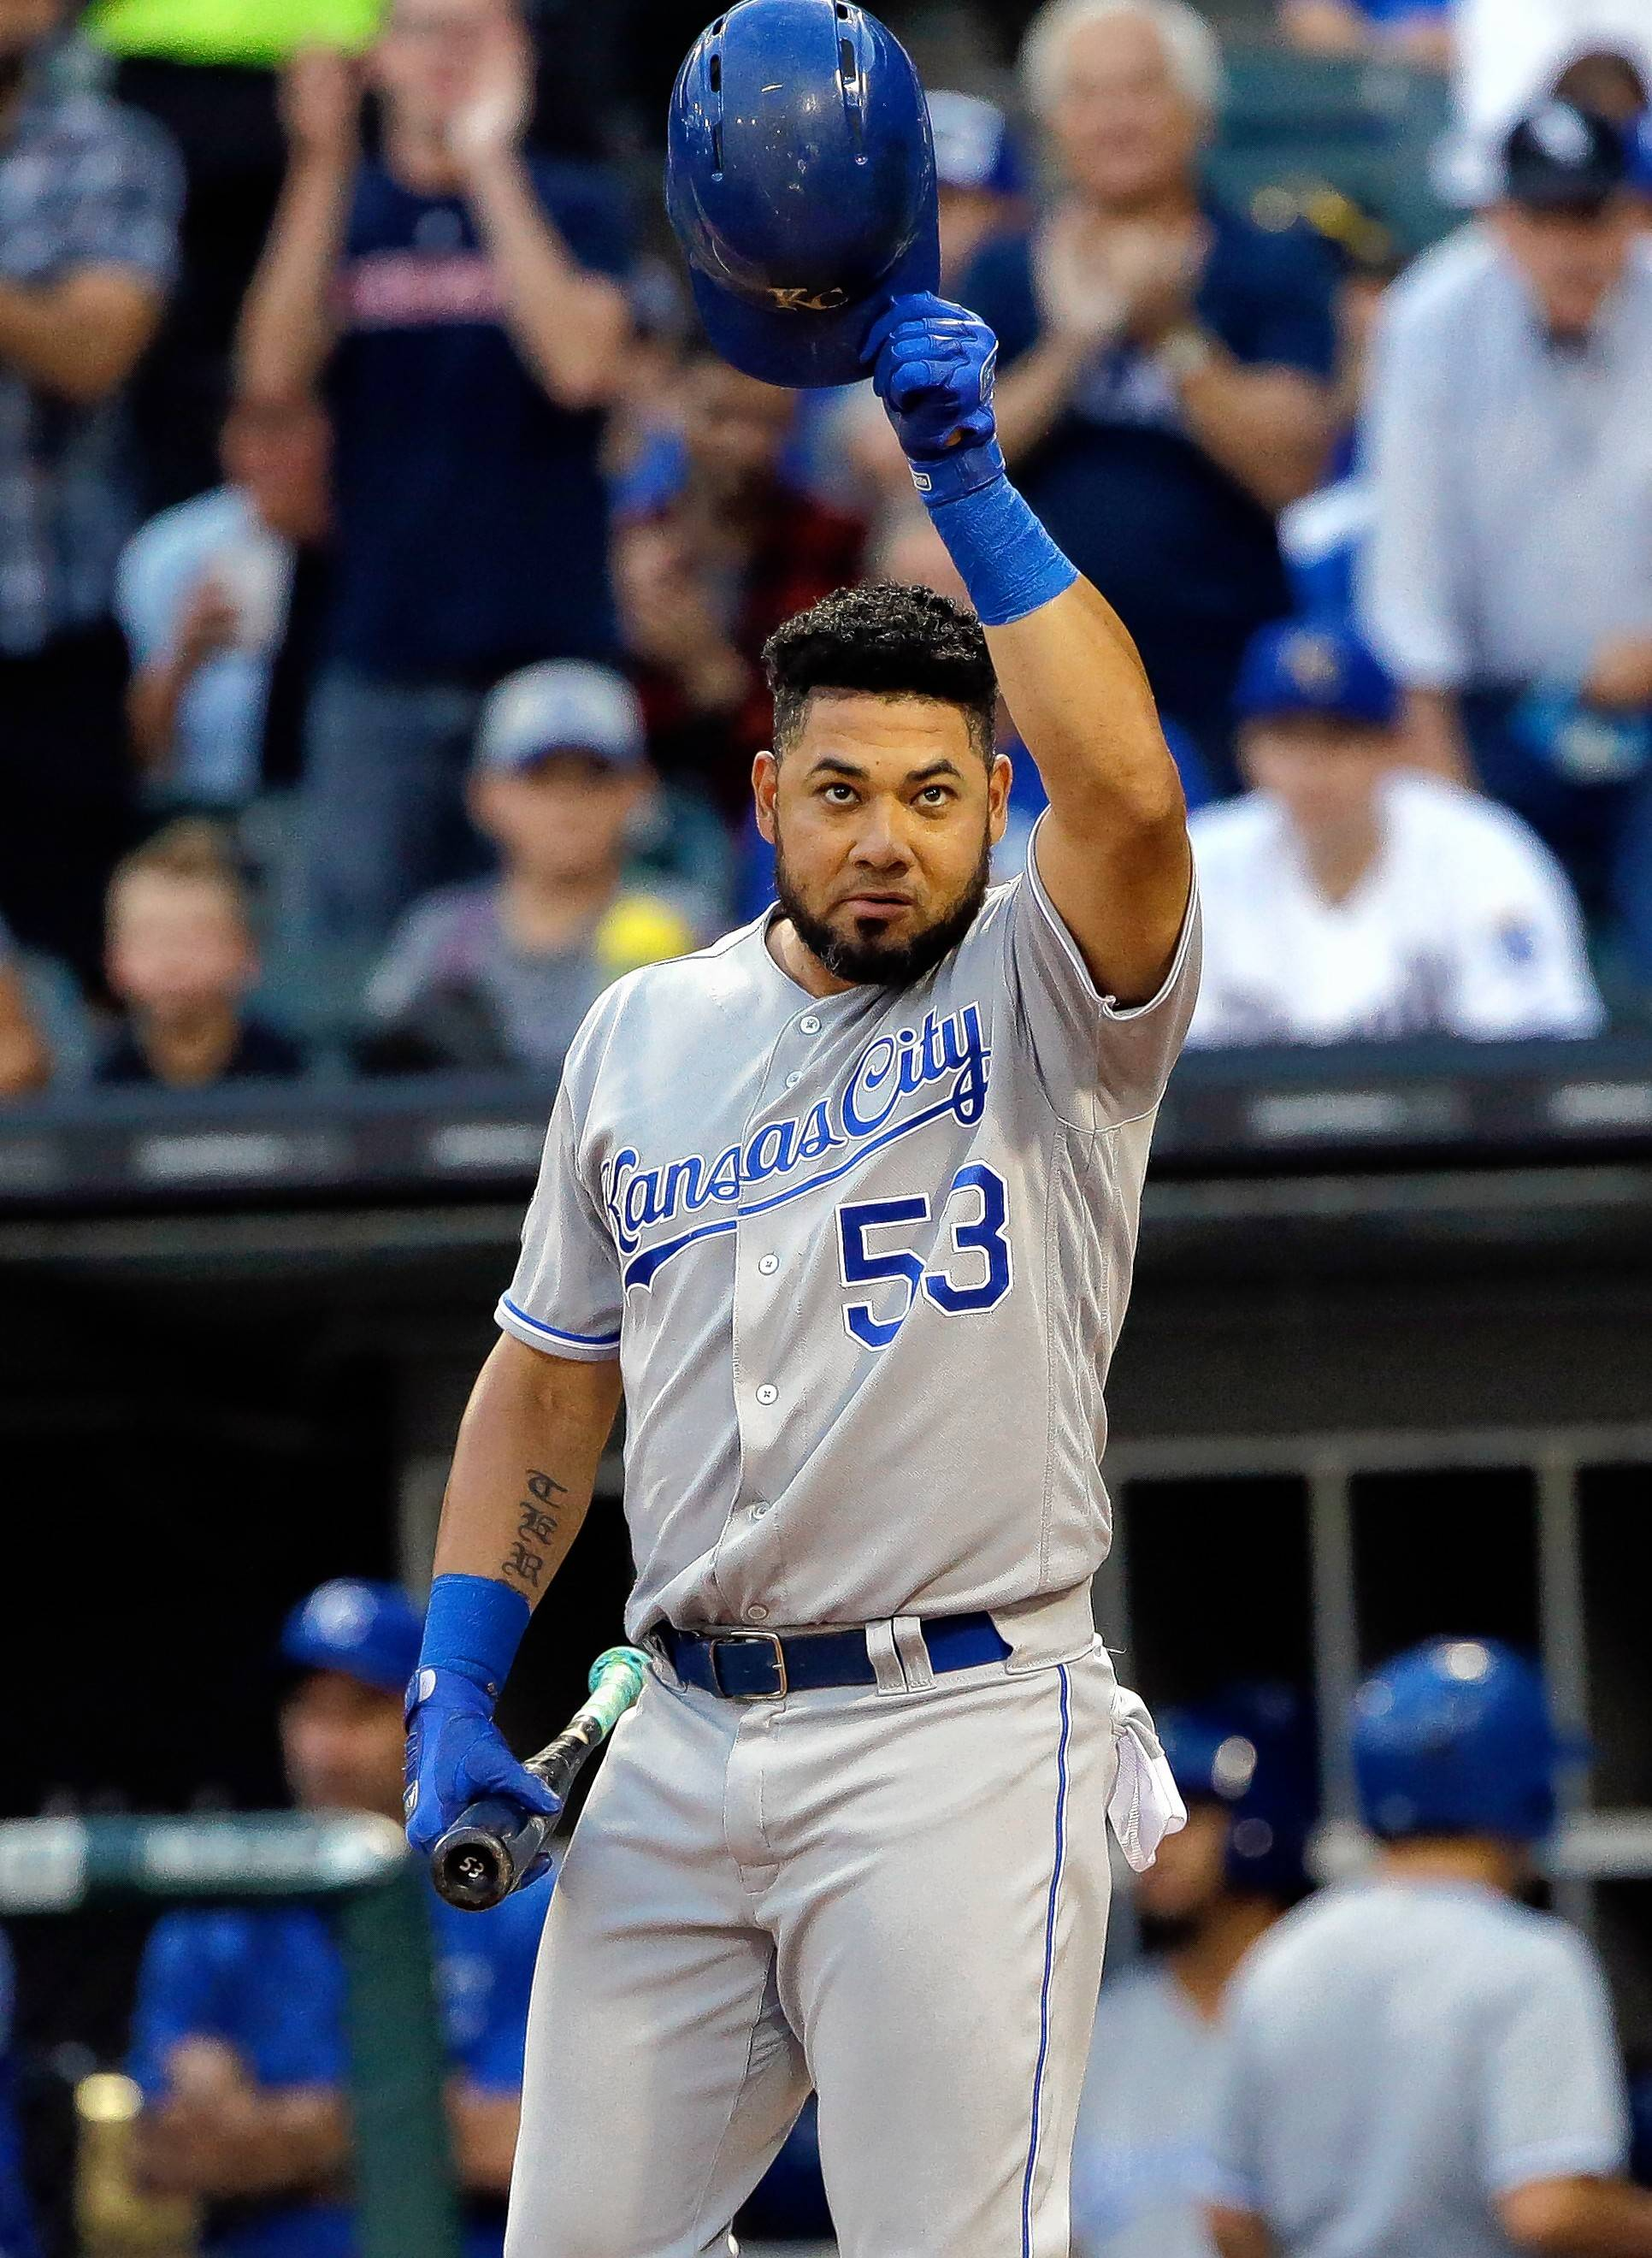 Traded by the Chicago White Sox on July 30 for two minor-league pitchers, popular outfielder Melky Cabrera was back at Guaranteed Rate Field on Friday with the Kansas City Royals.